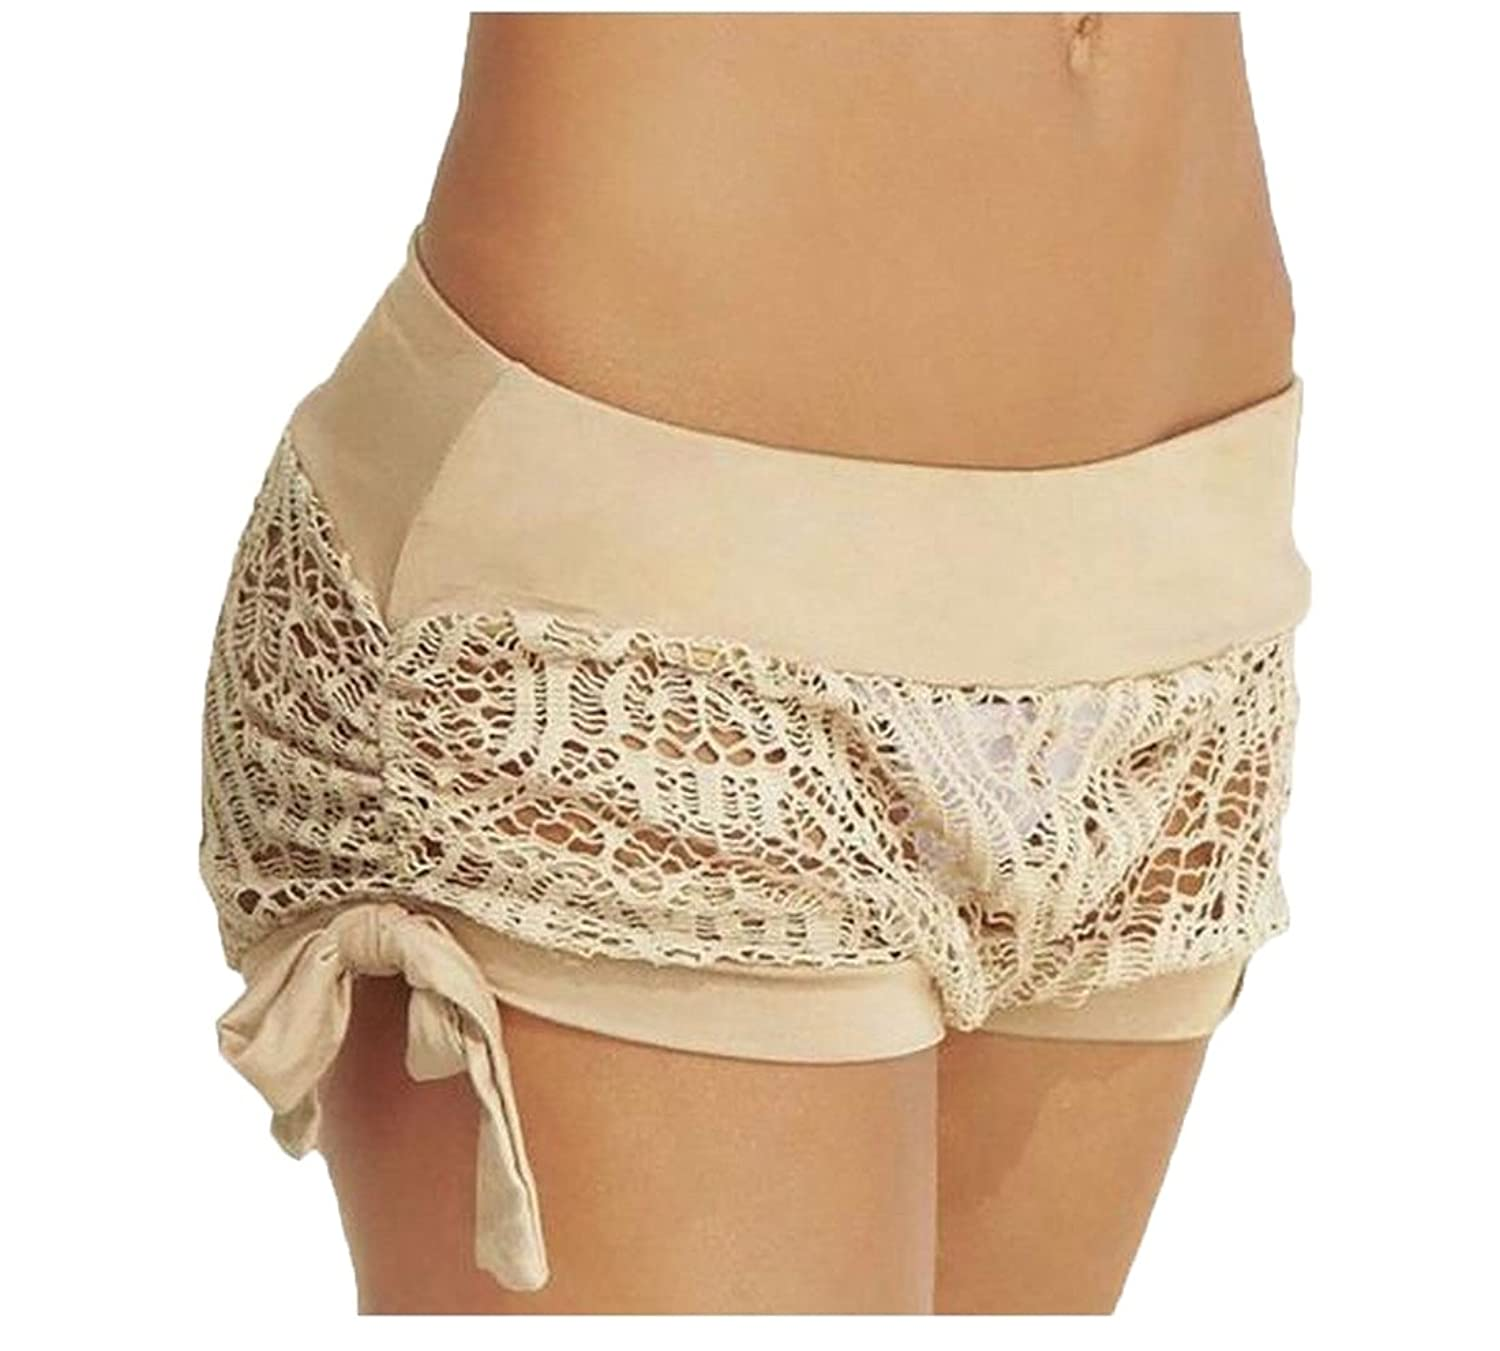 Abetteric Women's Lace Trim Contrast Hollow Out Solid Hot Shorts